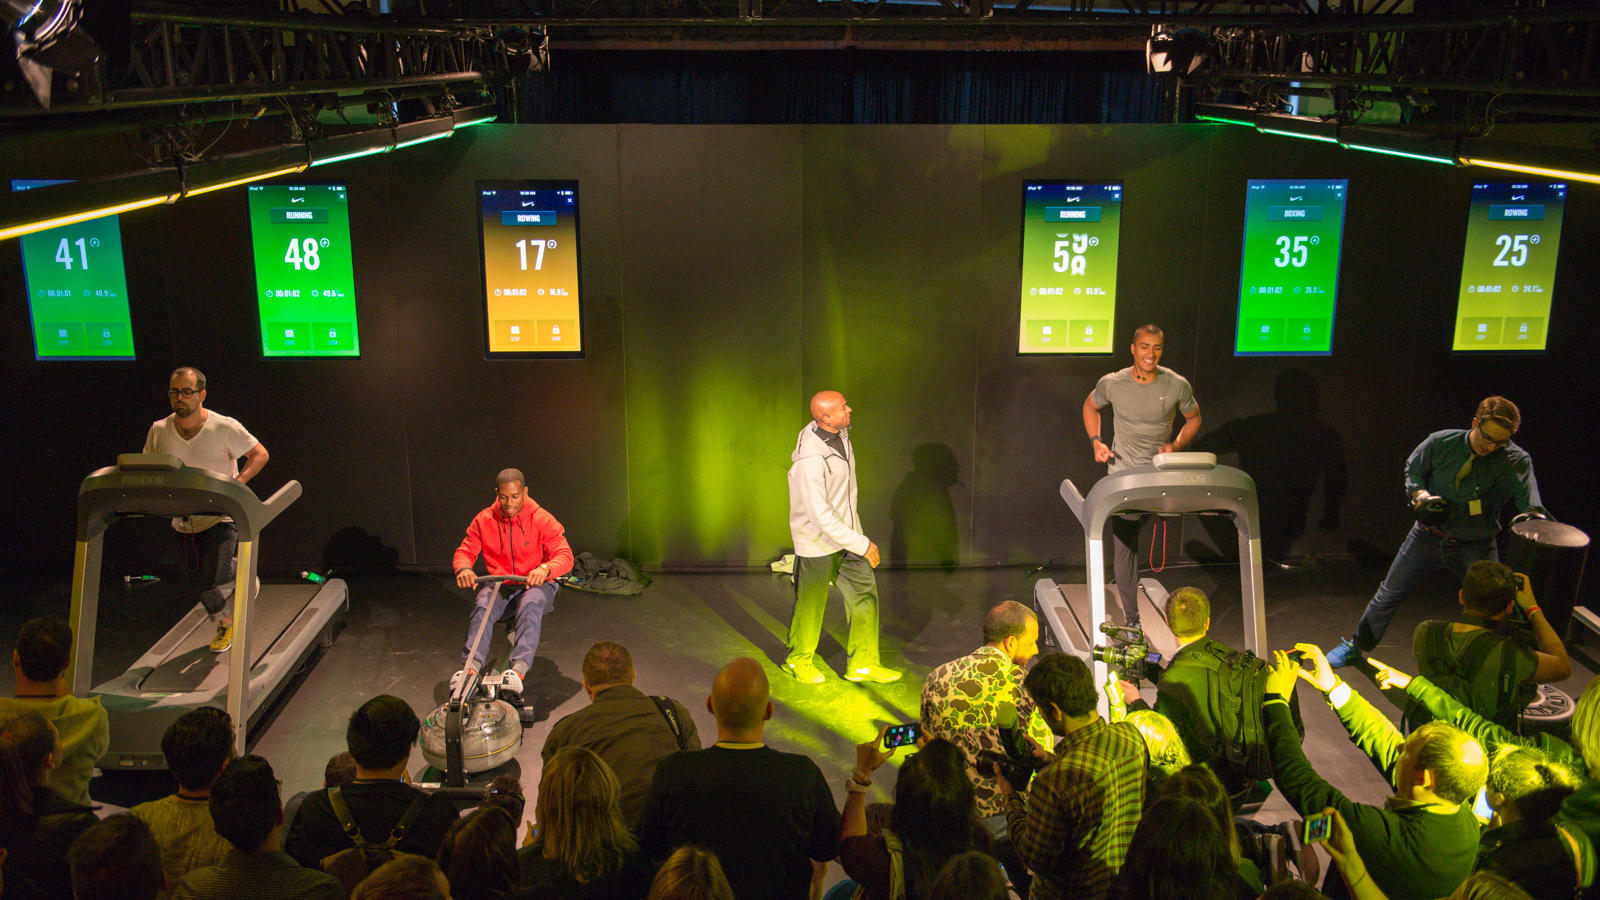 Victor Cruz, Ashton Eaton - Nike+ event